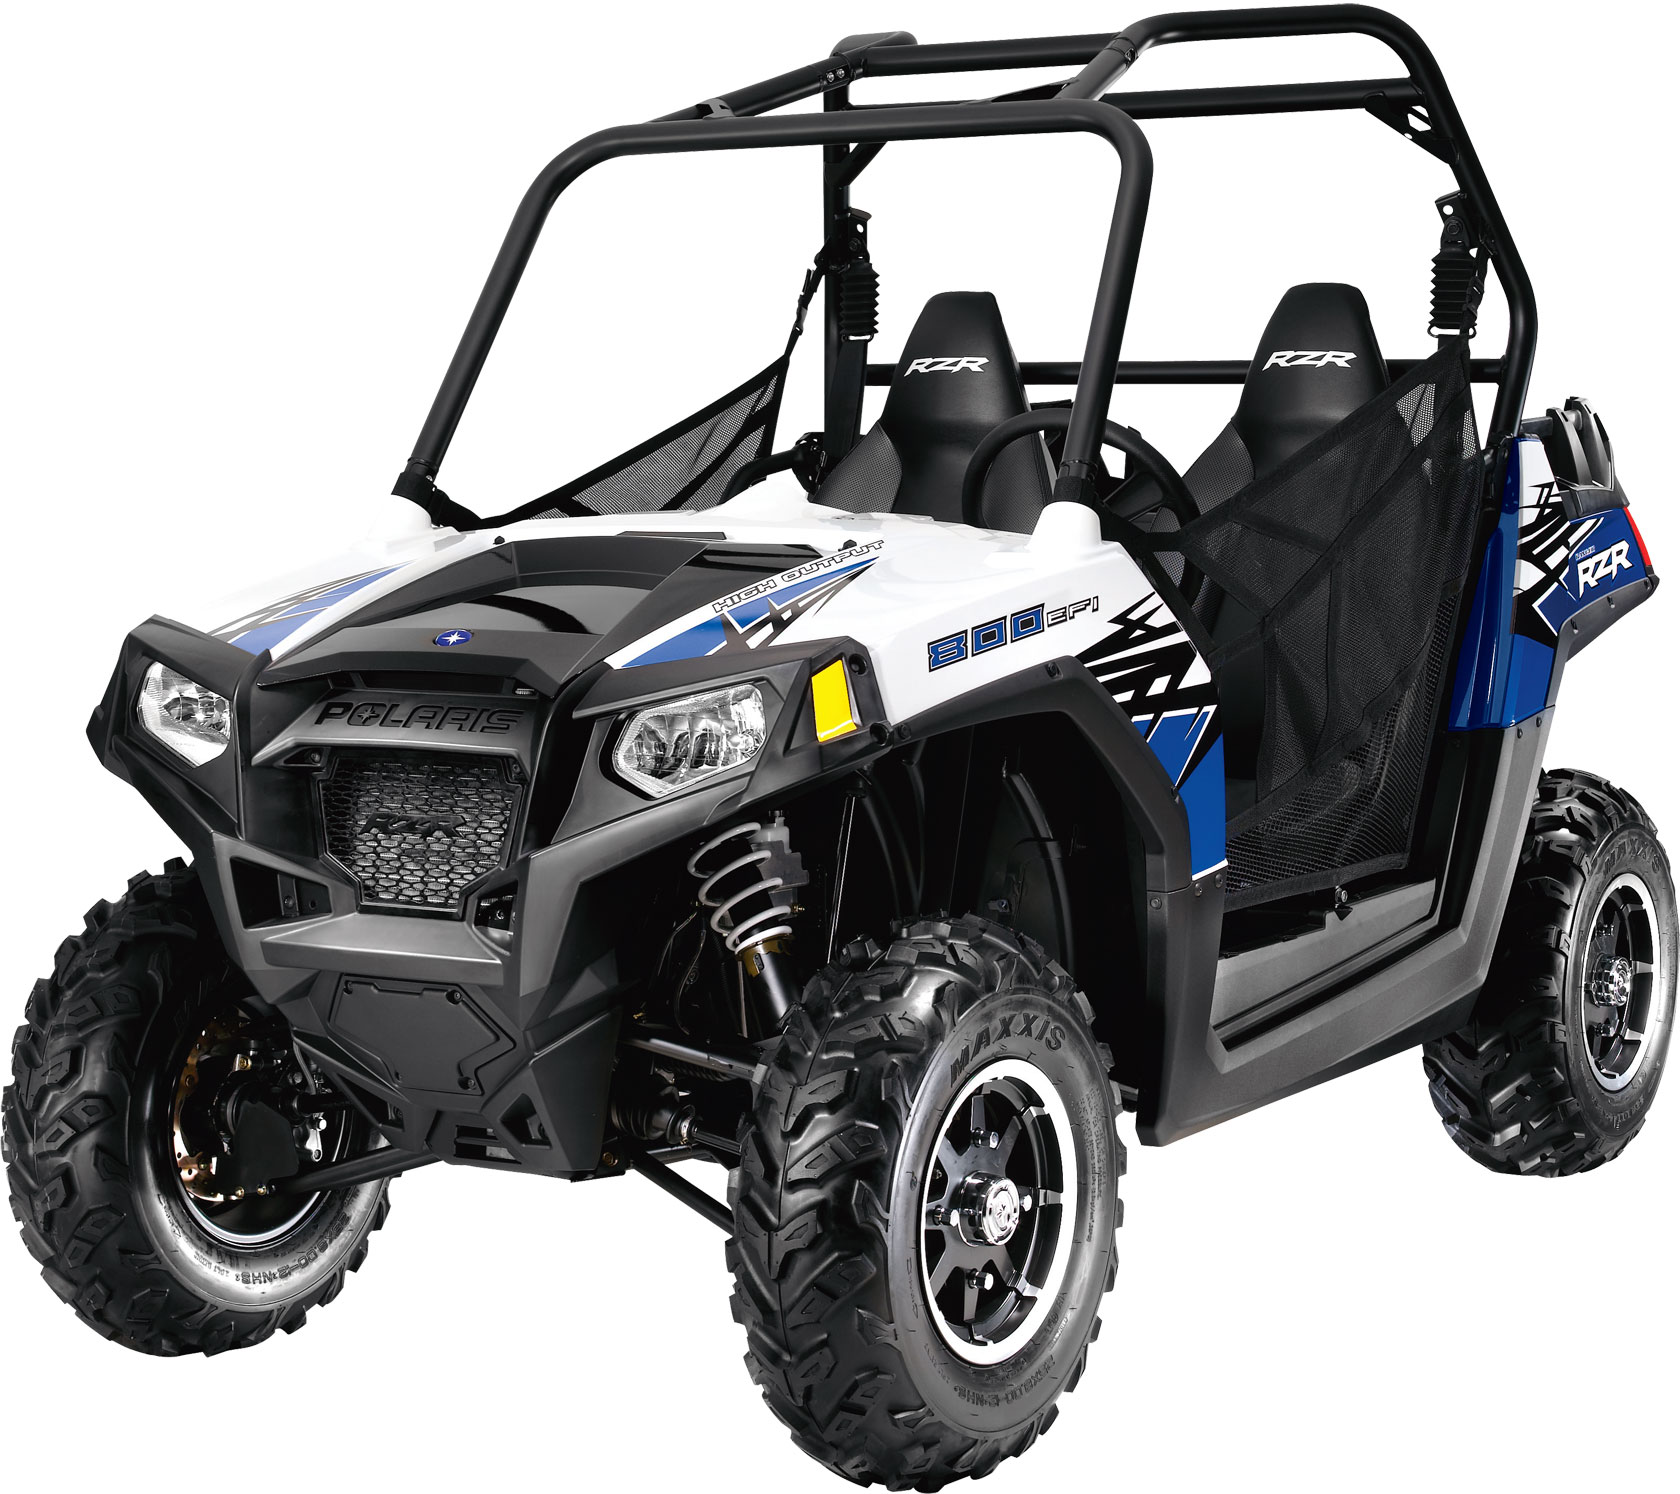 2011 Polaris Ranger Rzr 800 Boardwalk Blue  White Le